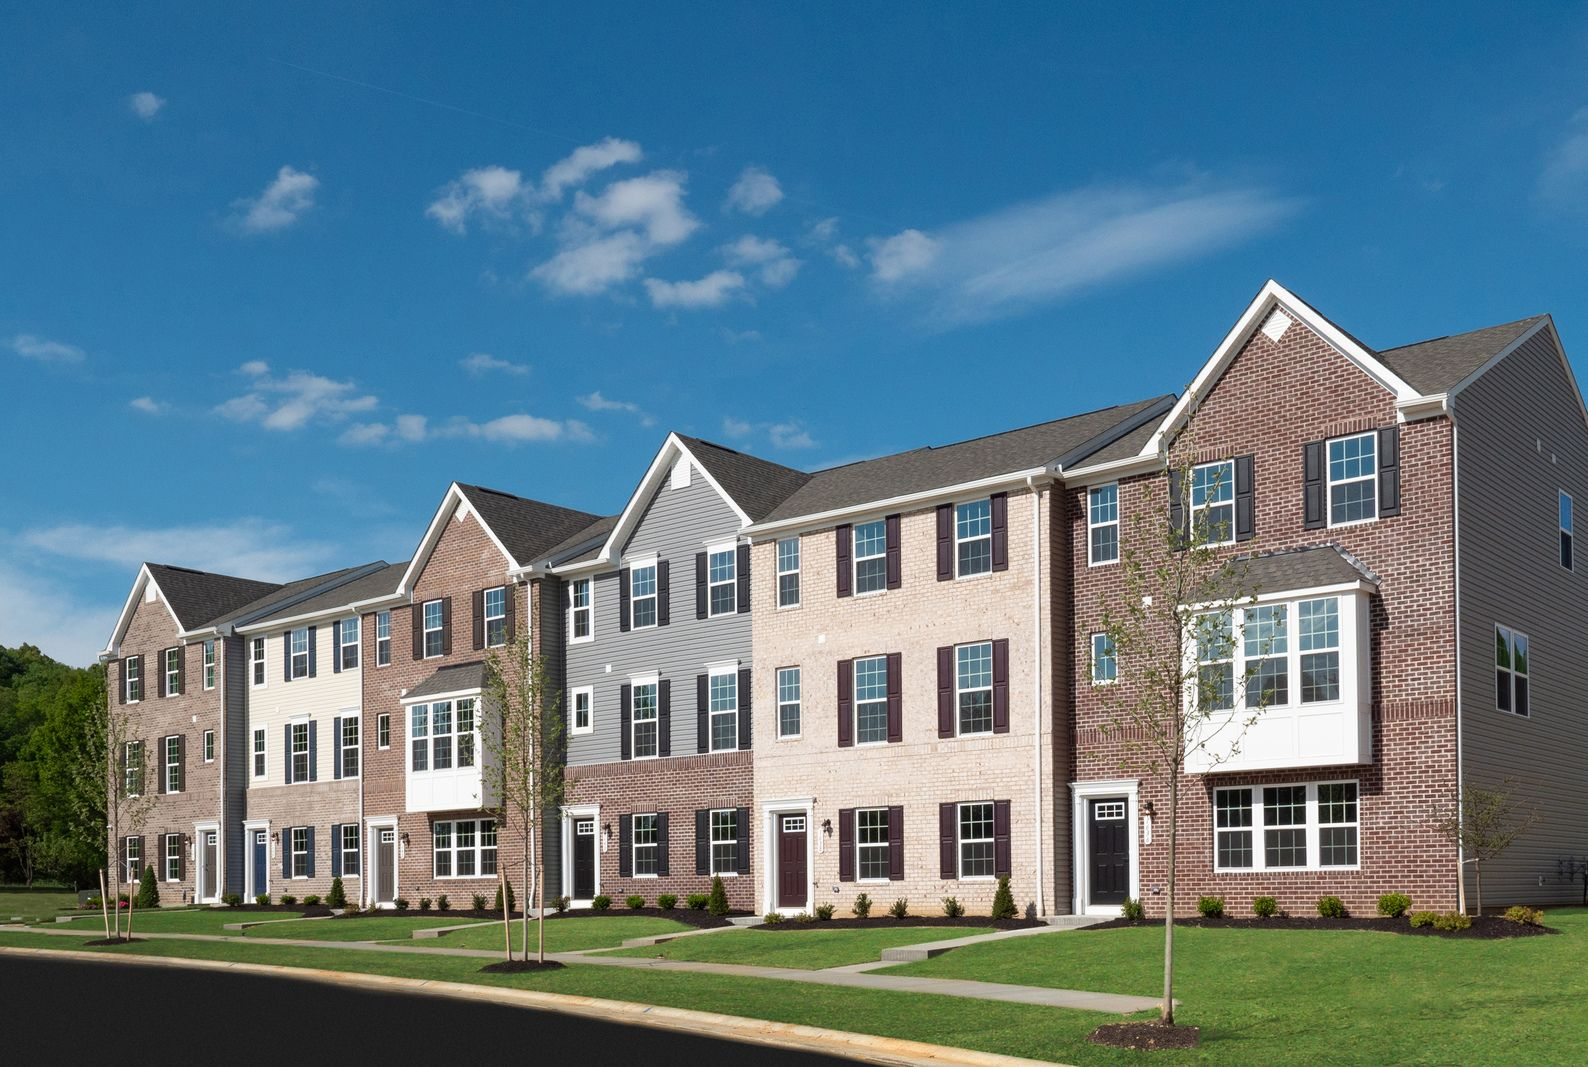 WELCOME HOME TO TOWNS AT STEELS CORNERS:Own a new townhome in Northern Cuyahoga Falls! 1 minute to Rt 8 for easy access to Akron/Cleveland. Have more fun with lawn/snow care provided.Click here to schedule your visit!